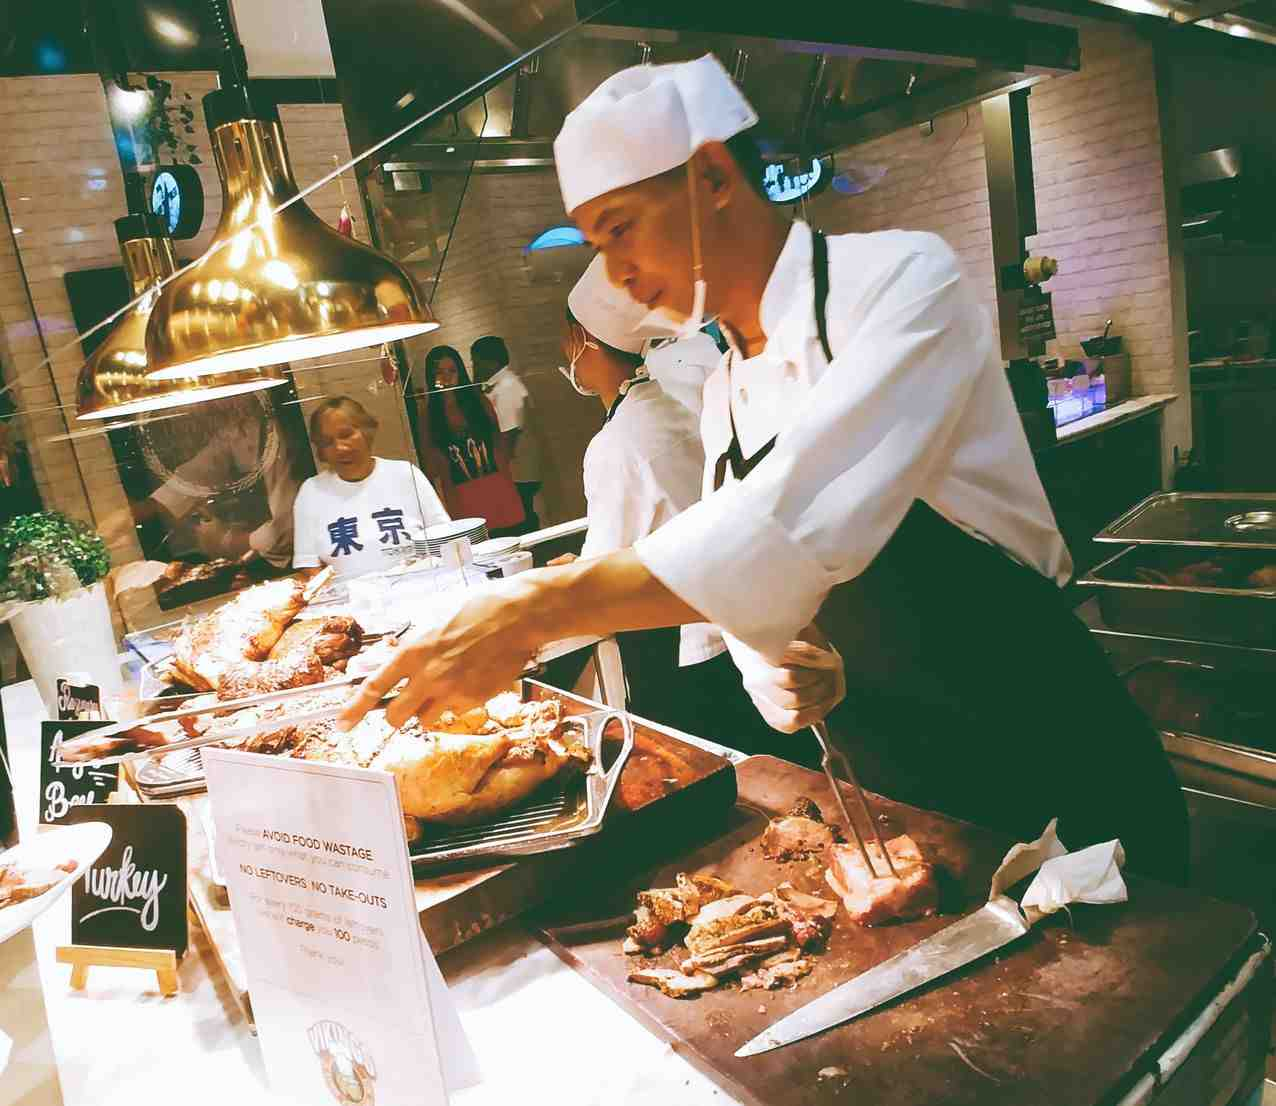 Vikings Luxury Buffet: chef preparing meats